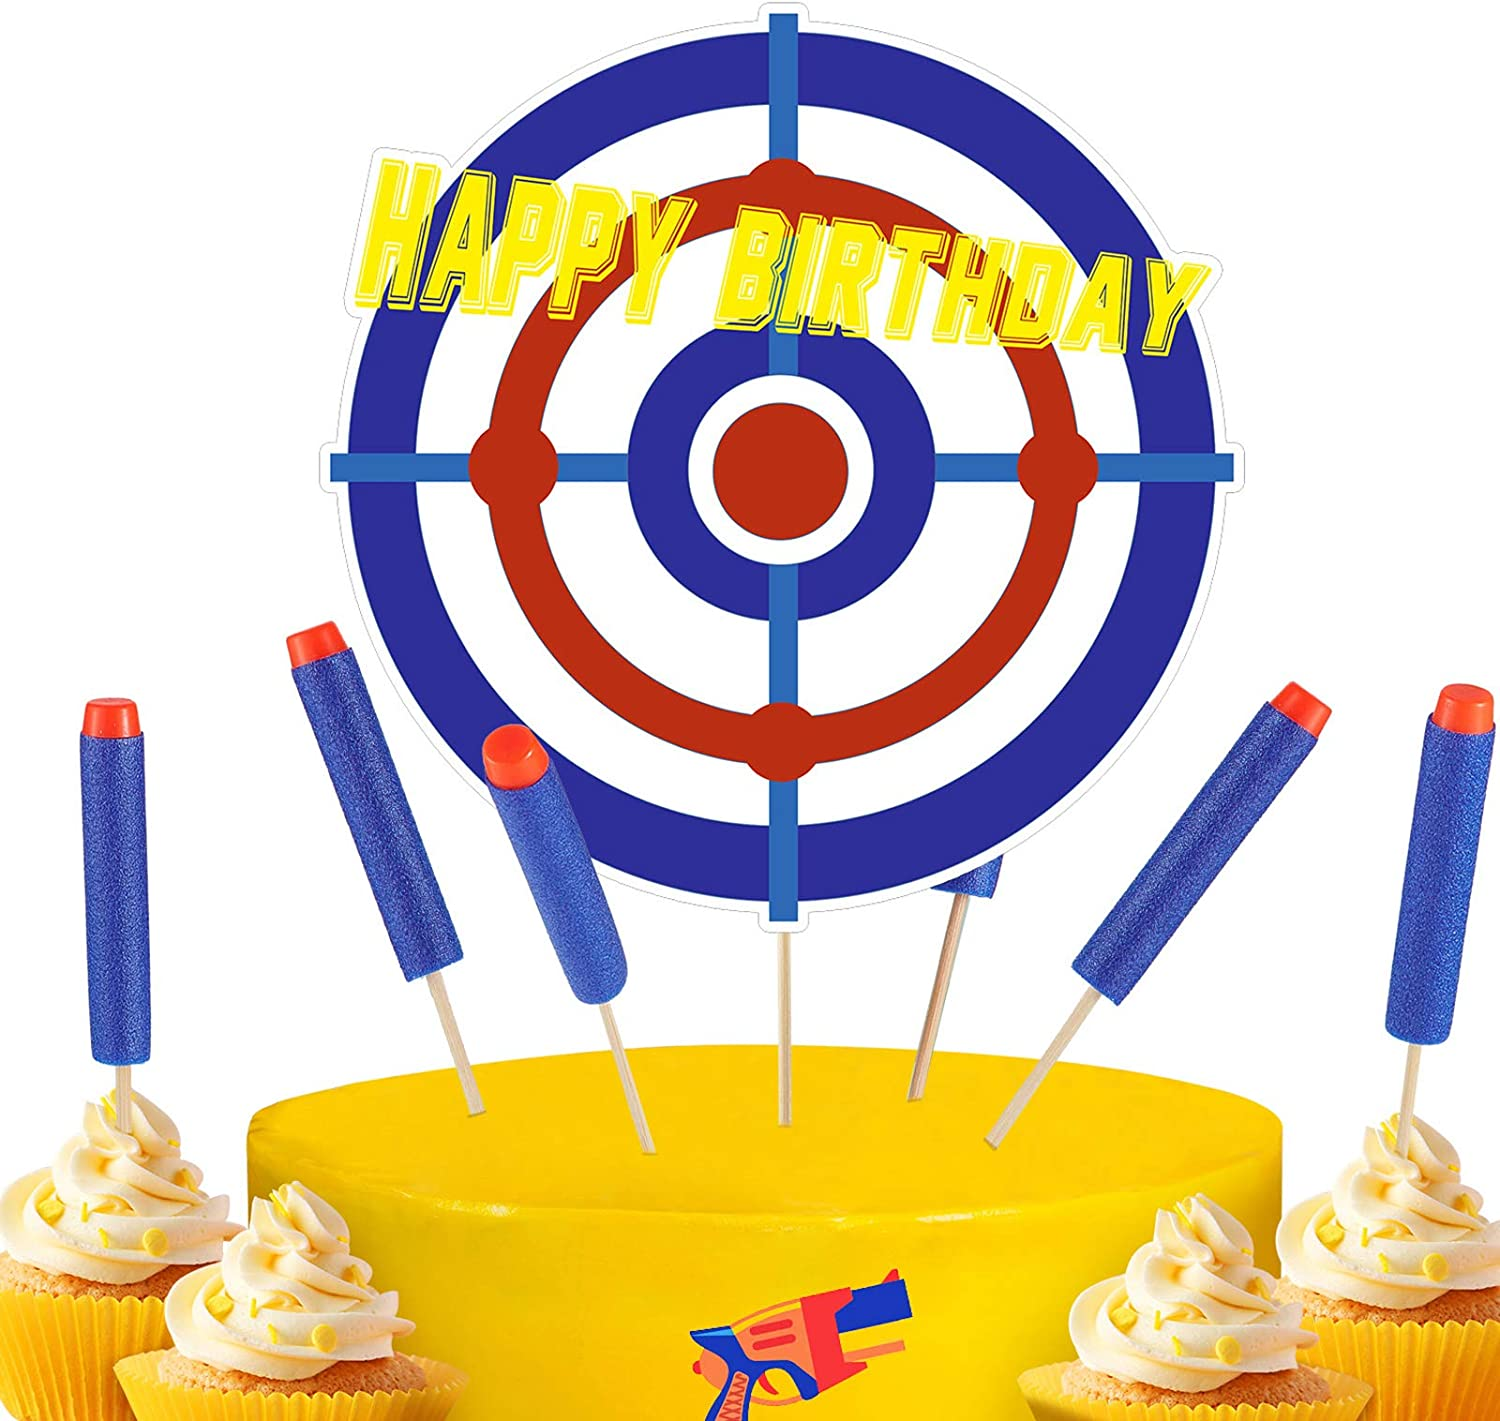 13 Pieces Happy Birthday Cupcake Cake Target War Challenge Credence the lowest price Toppers